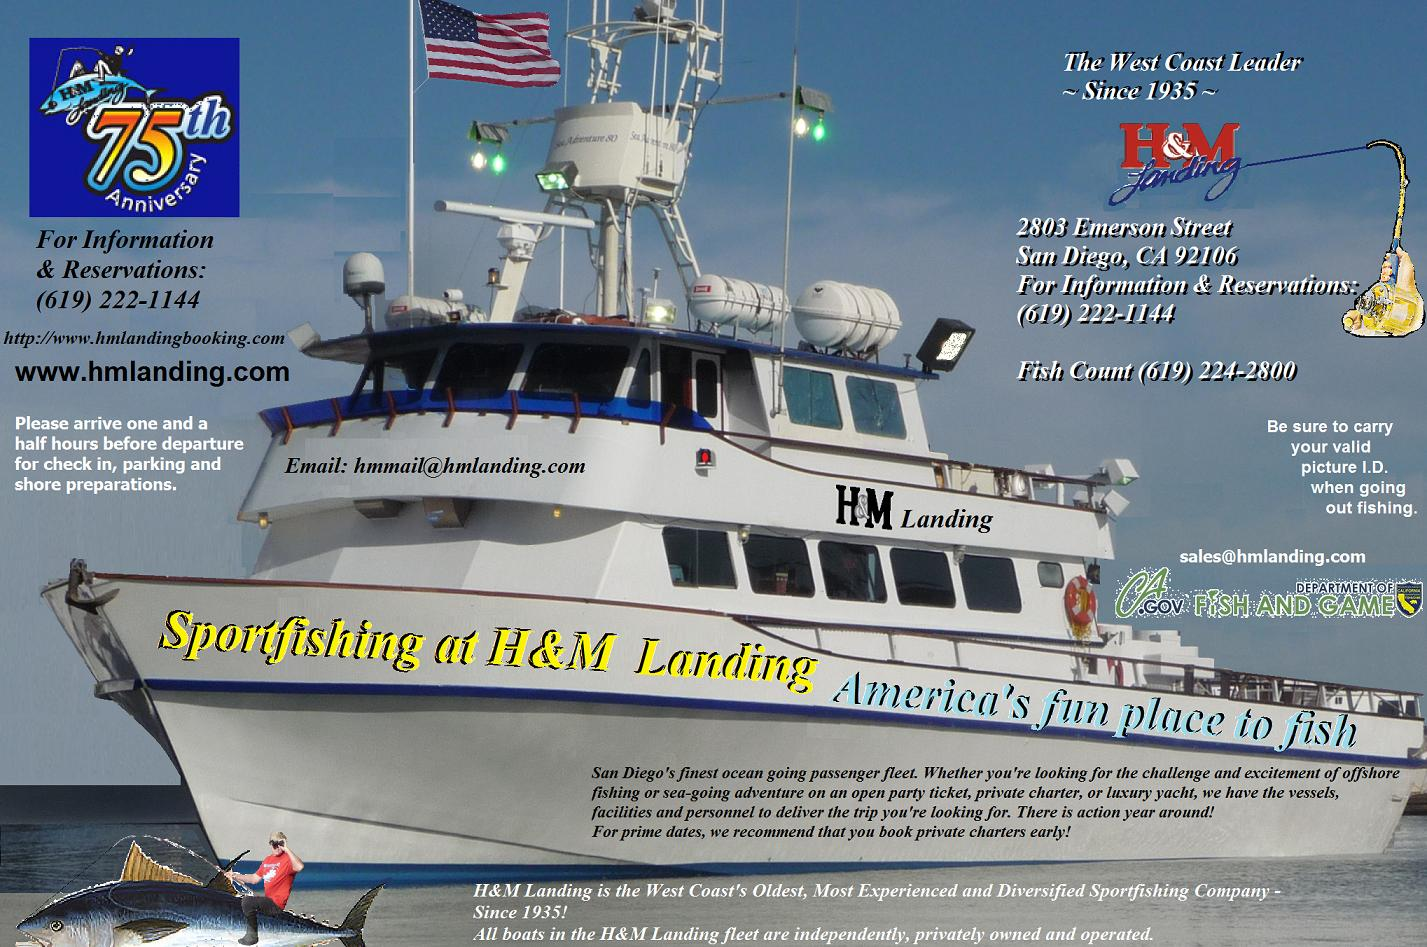 hm landing review by captain scott mcdaniels sea adventure